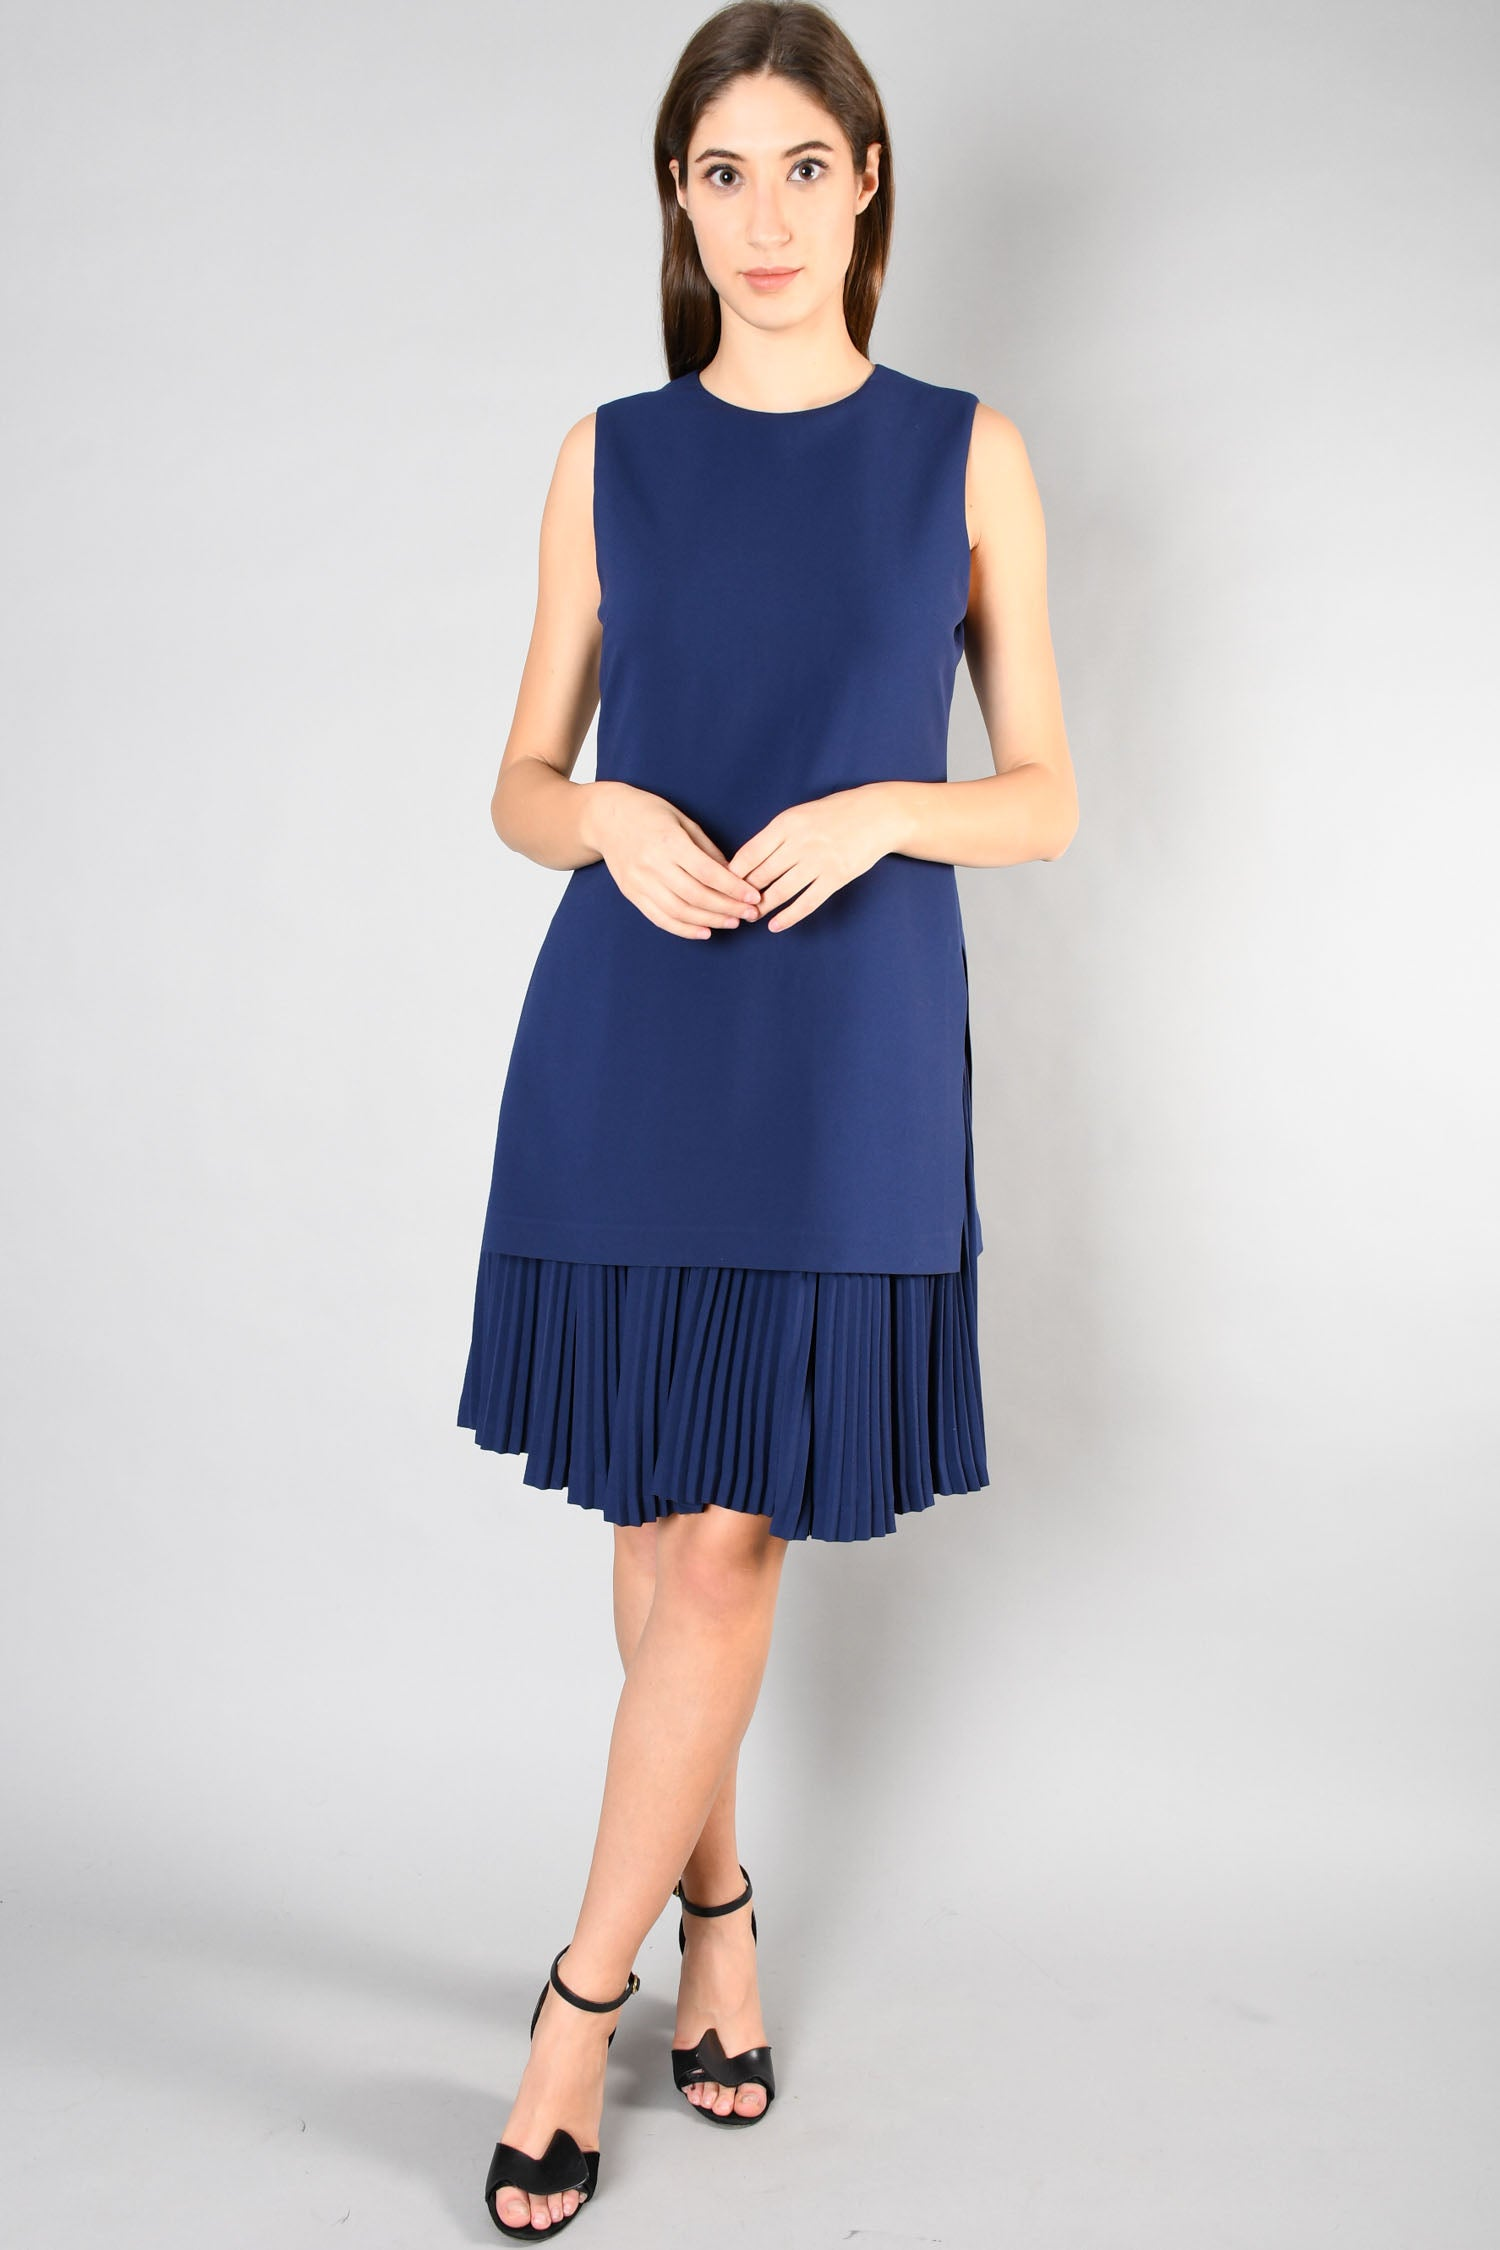 Theory Blue Sleeveless Dress w/ Pleated Hem Size 8